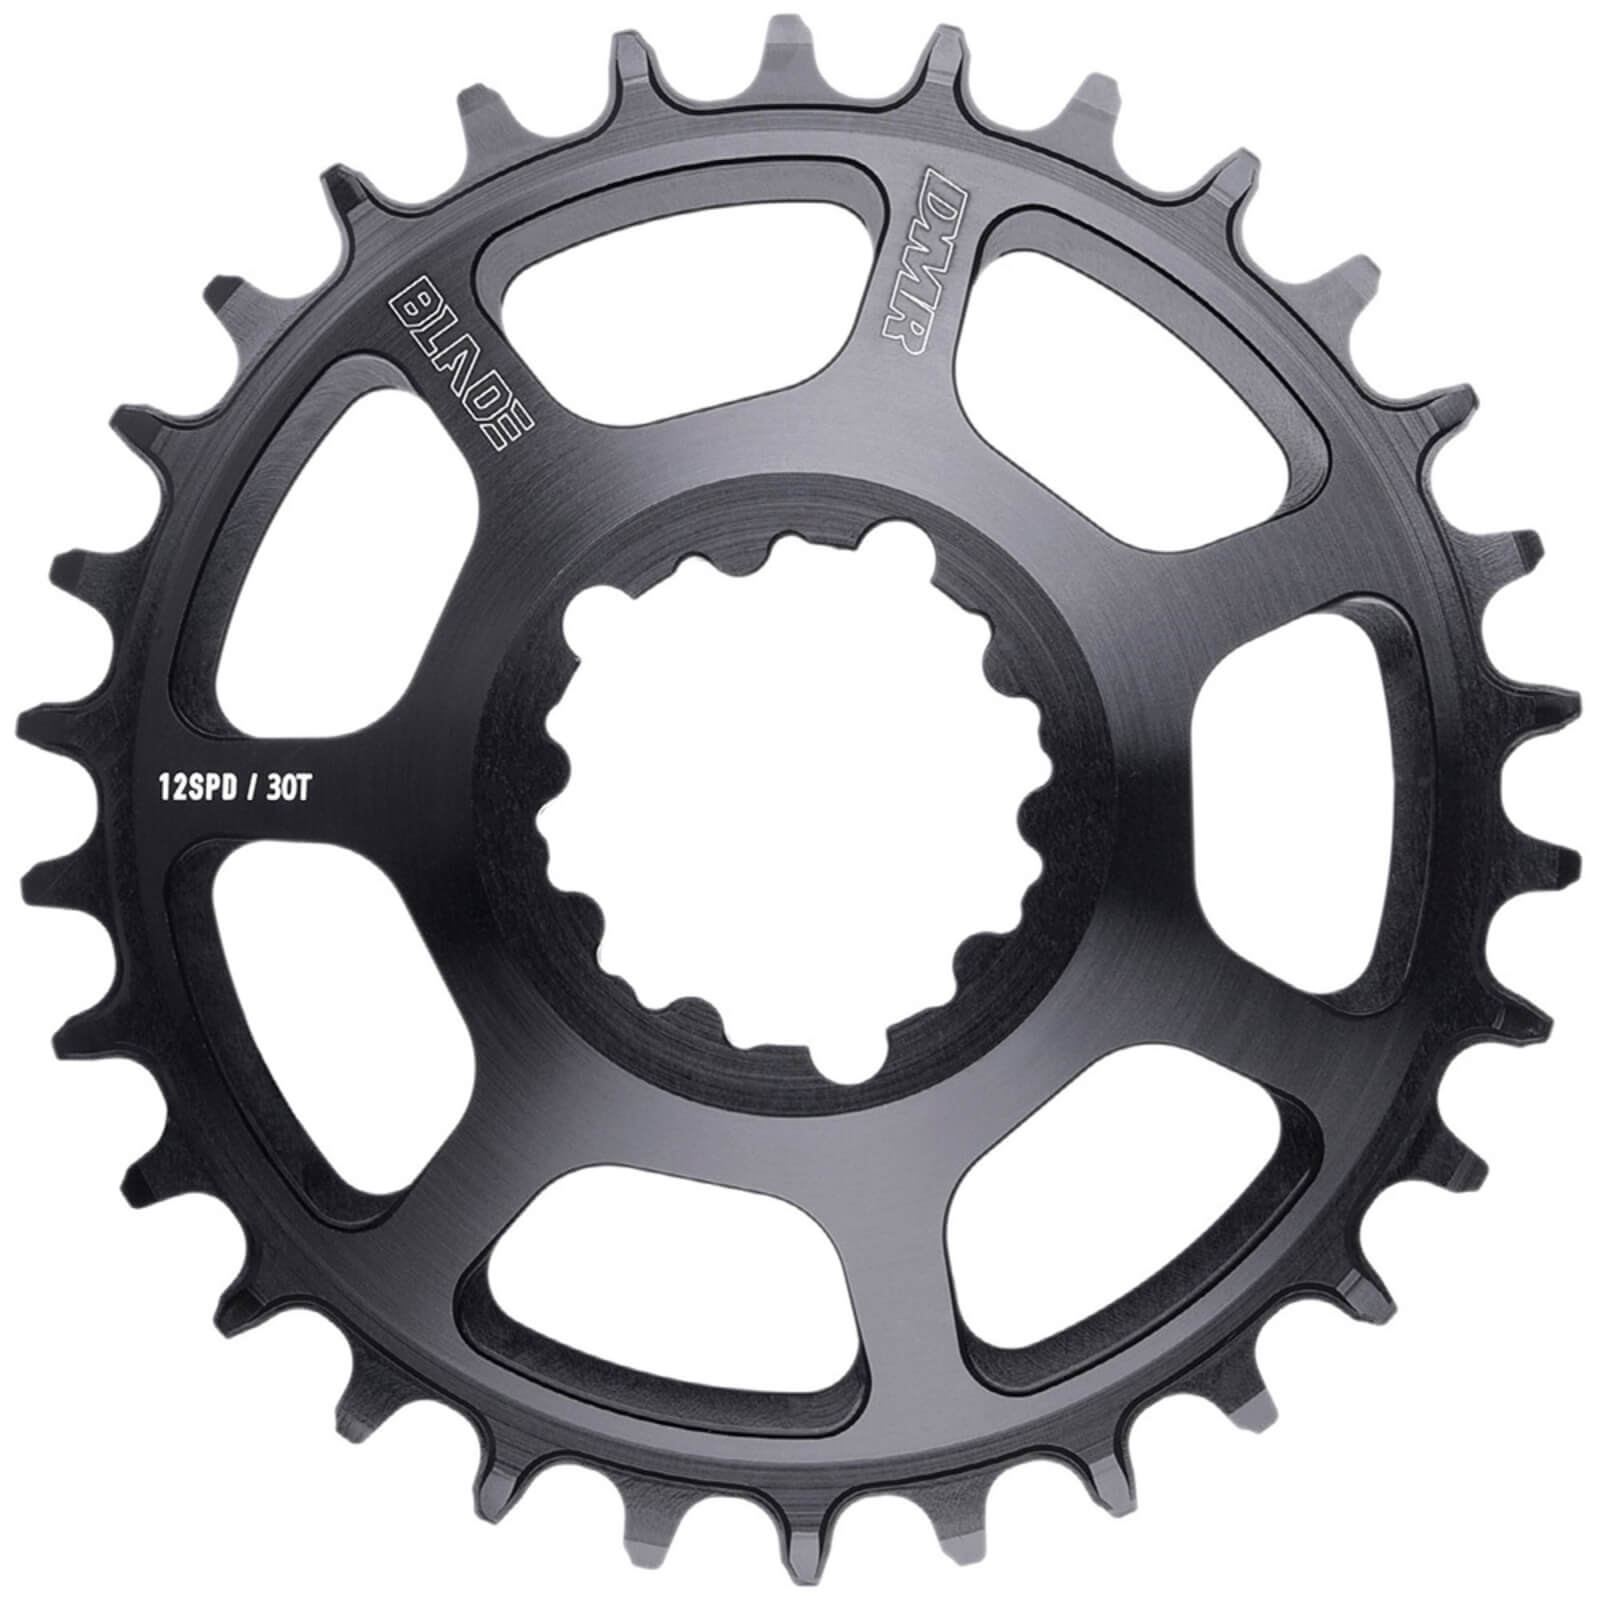 Dmr Blade 12 Speed Direct Mount Chain Ring - 30t - Non-boost